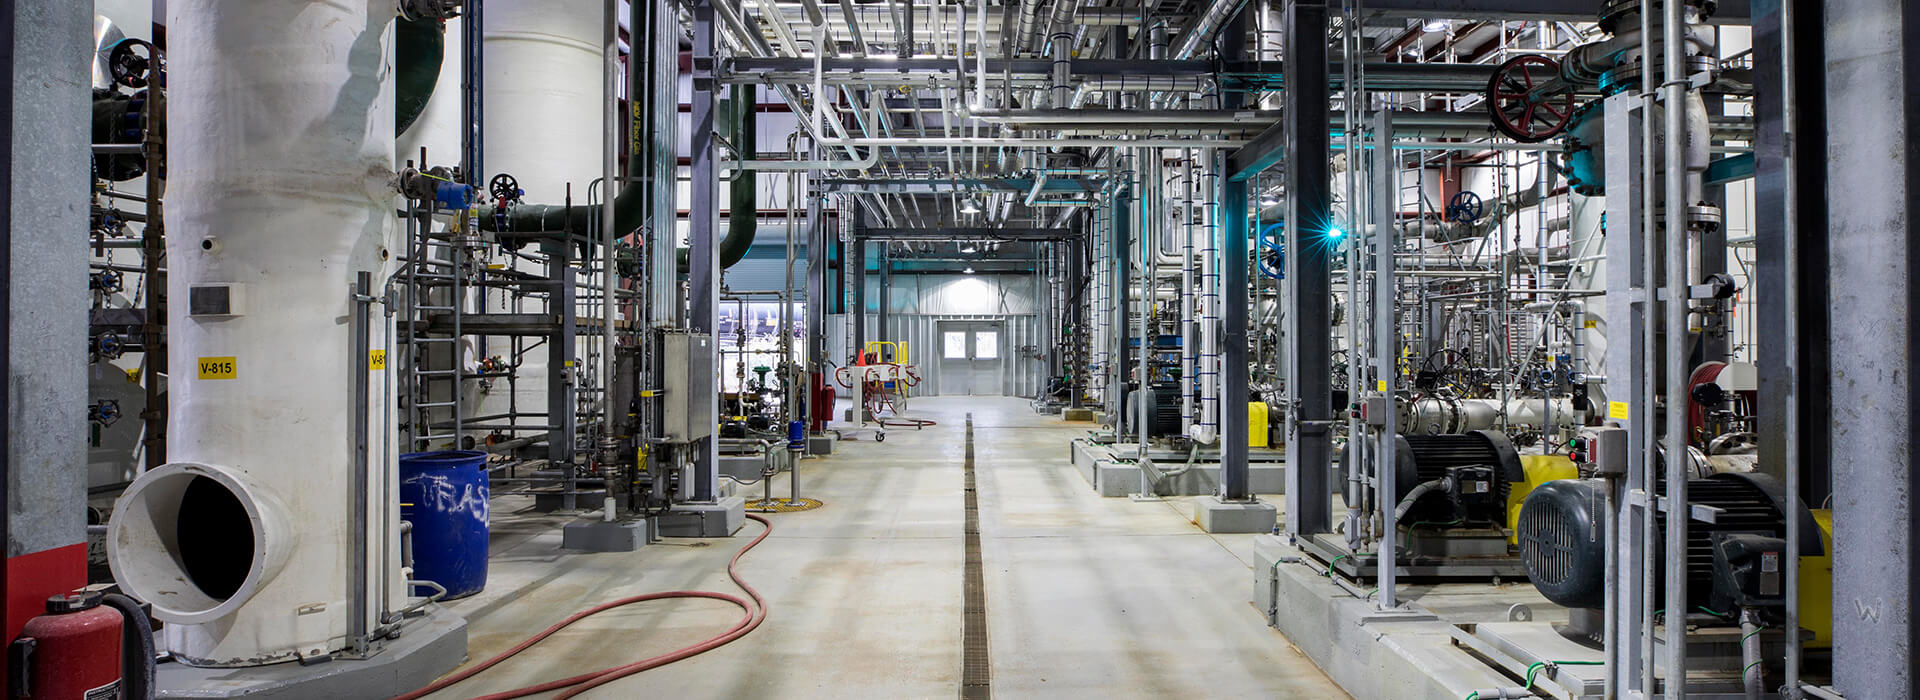 New Railroad Track Allows Chs Refining To Double Storage